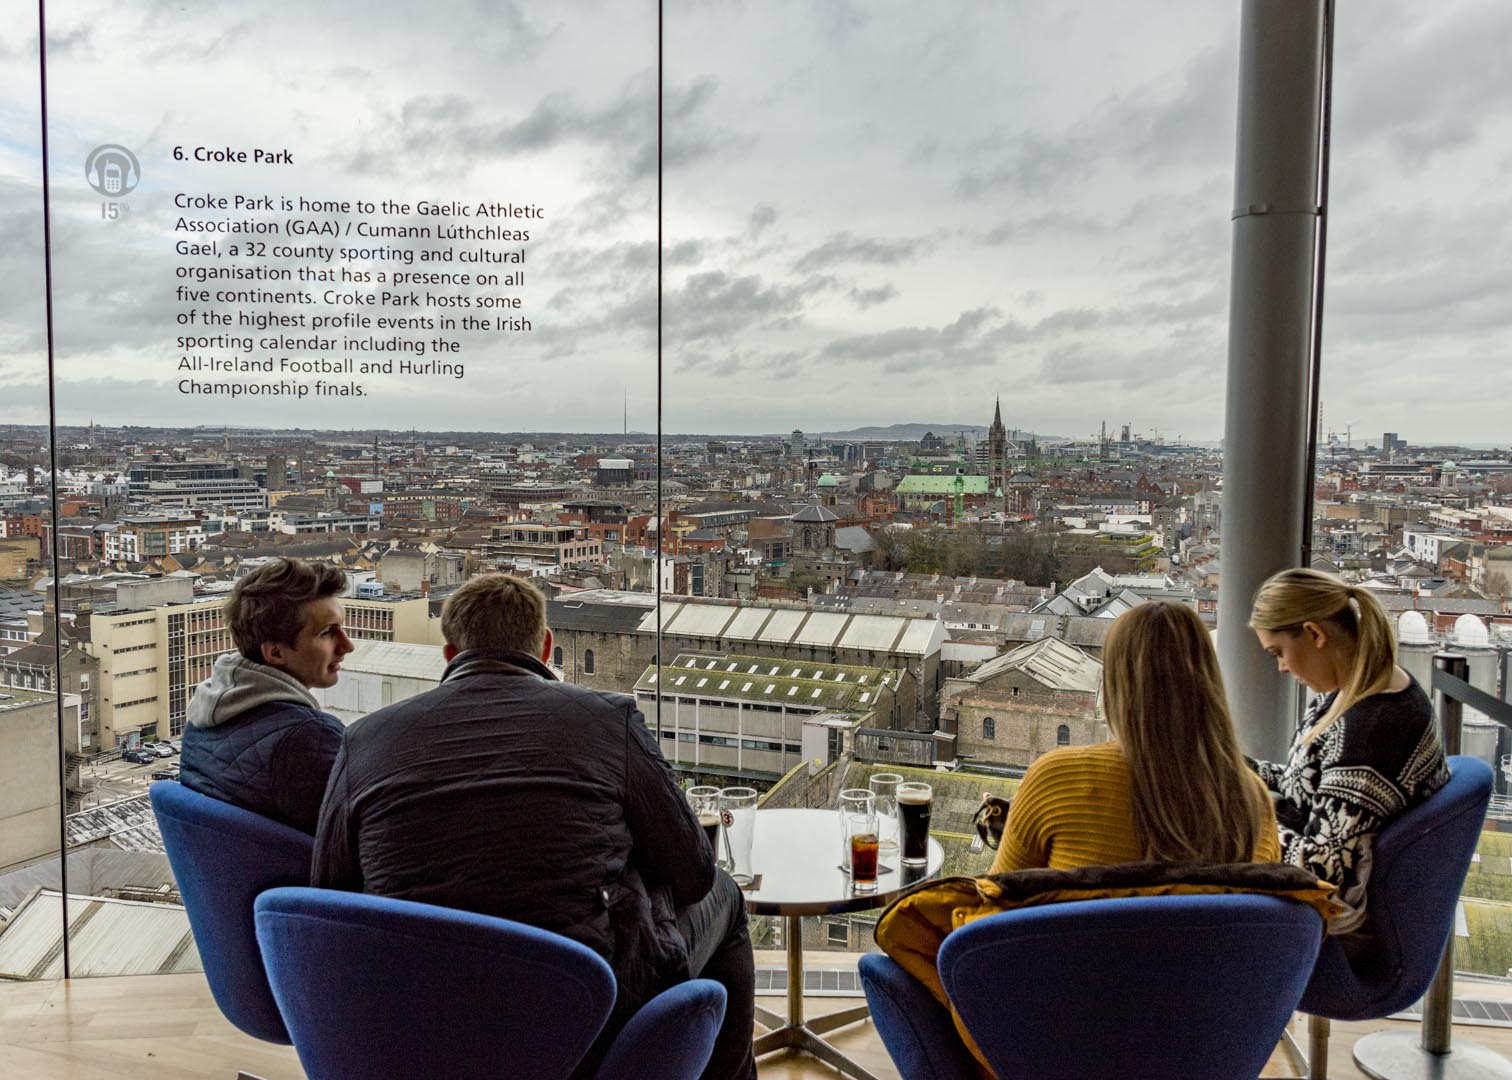 Dublin attractions - Guinness Storehouse